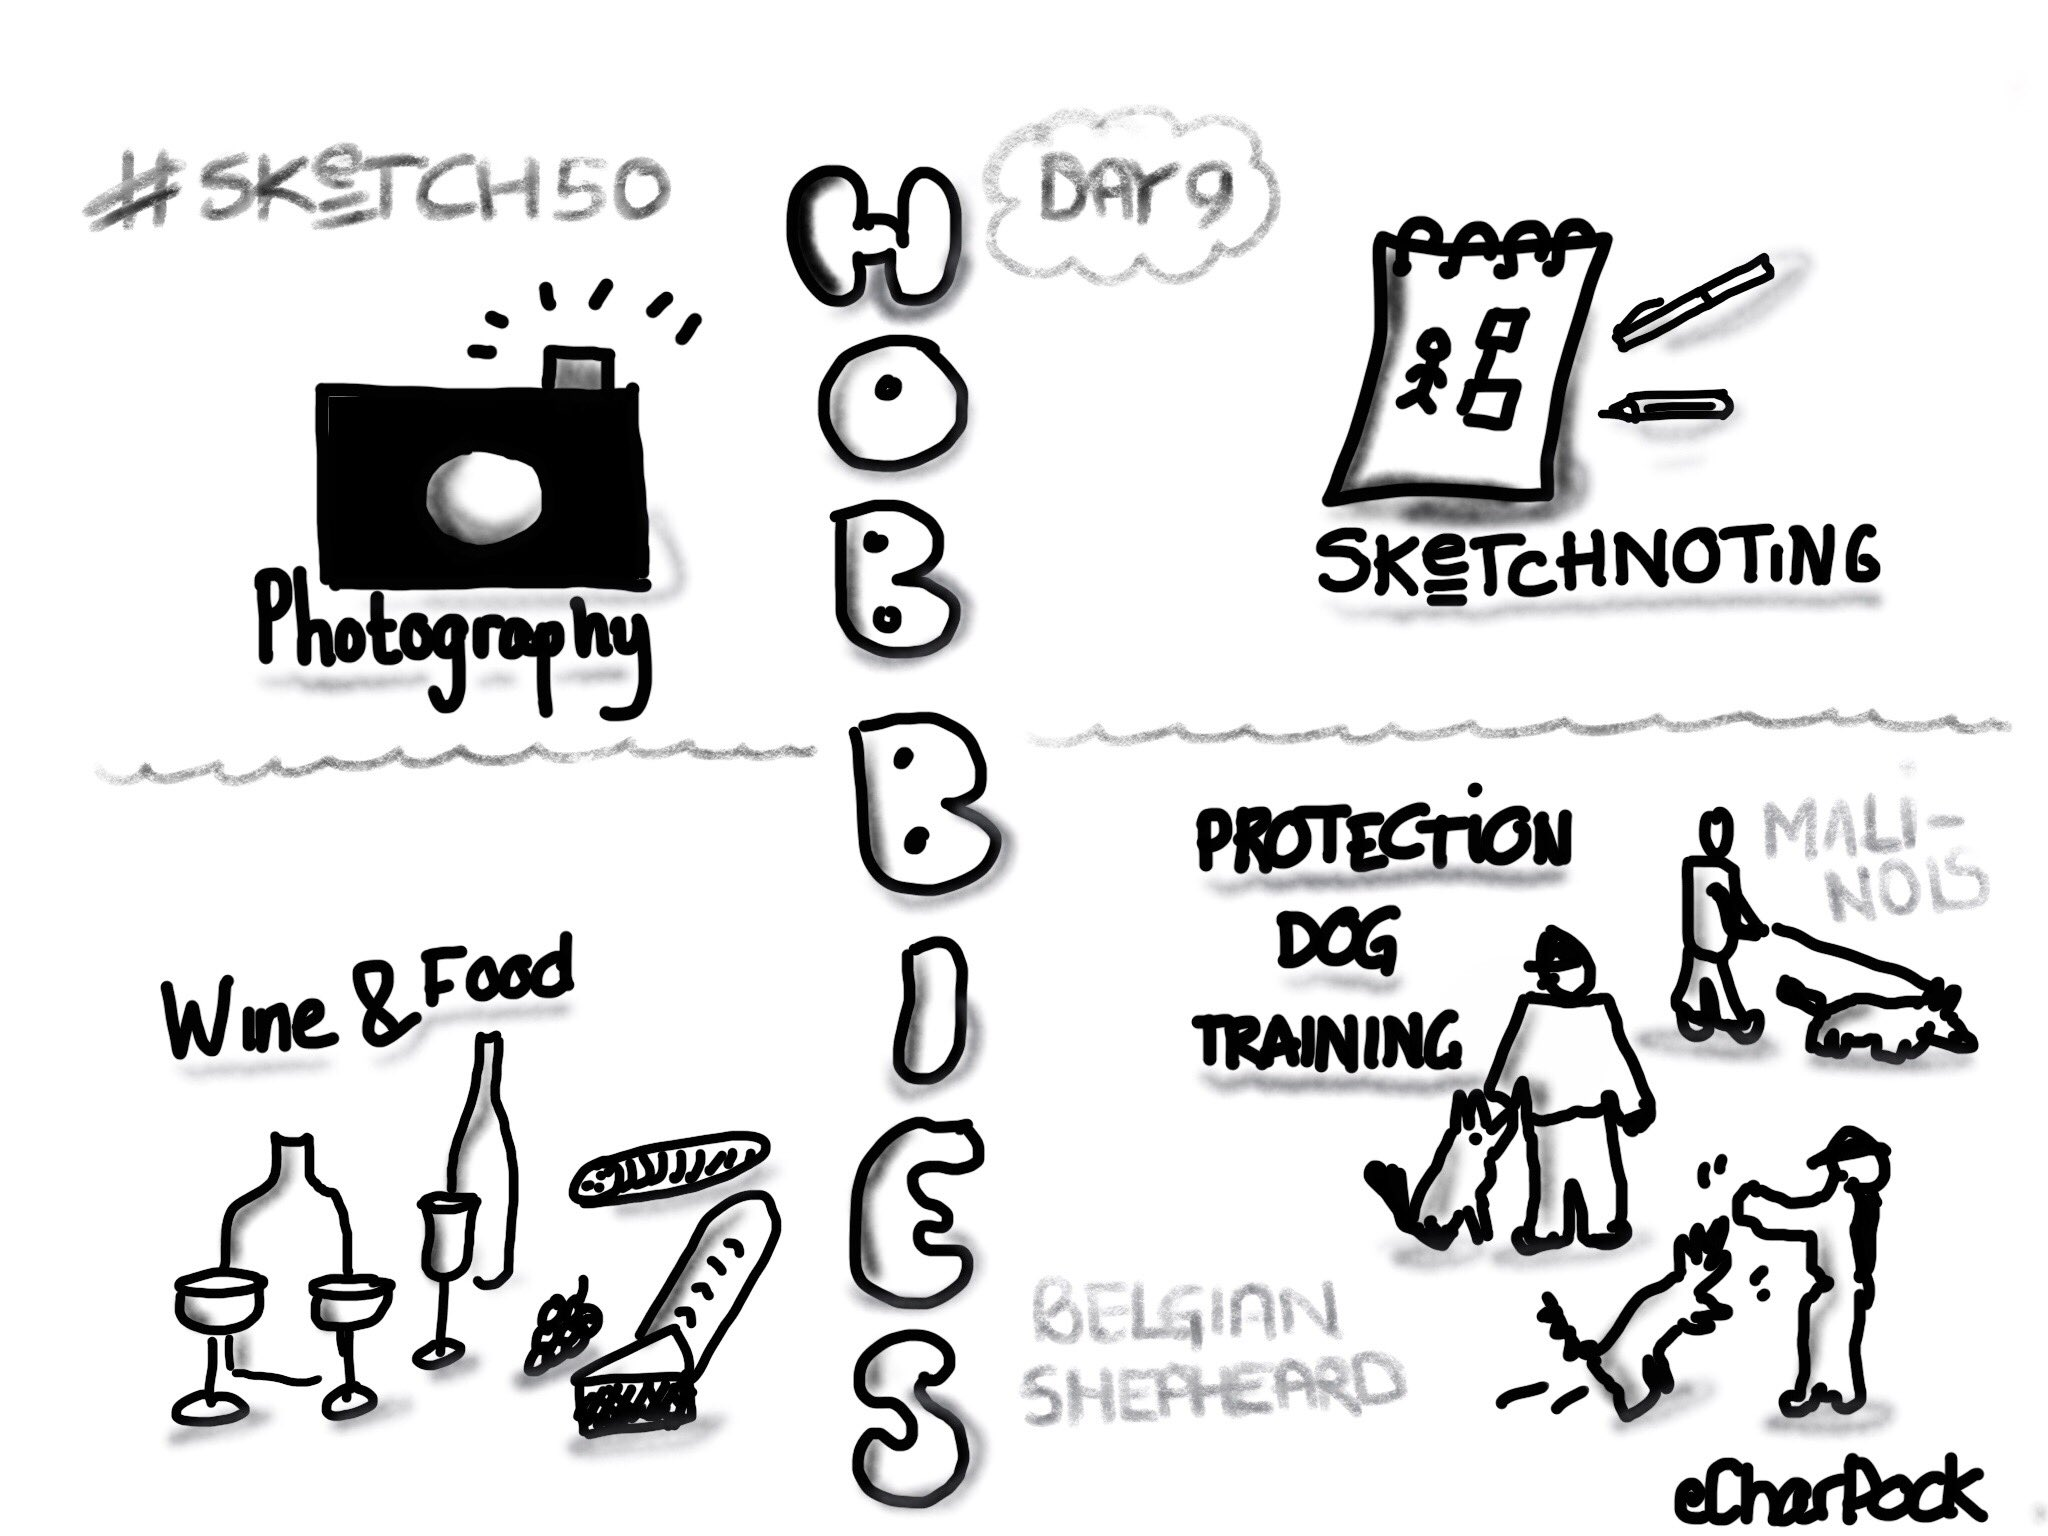 @sketch_50 Day9 hobbies #sketch50 #sketchnotes #todaysdoodle https://t.co/SqyvhcZYJW